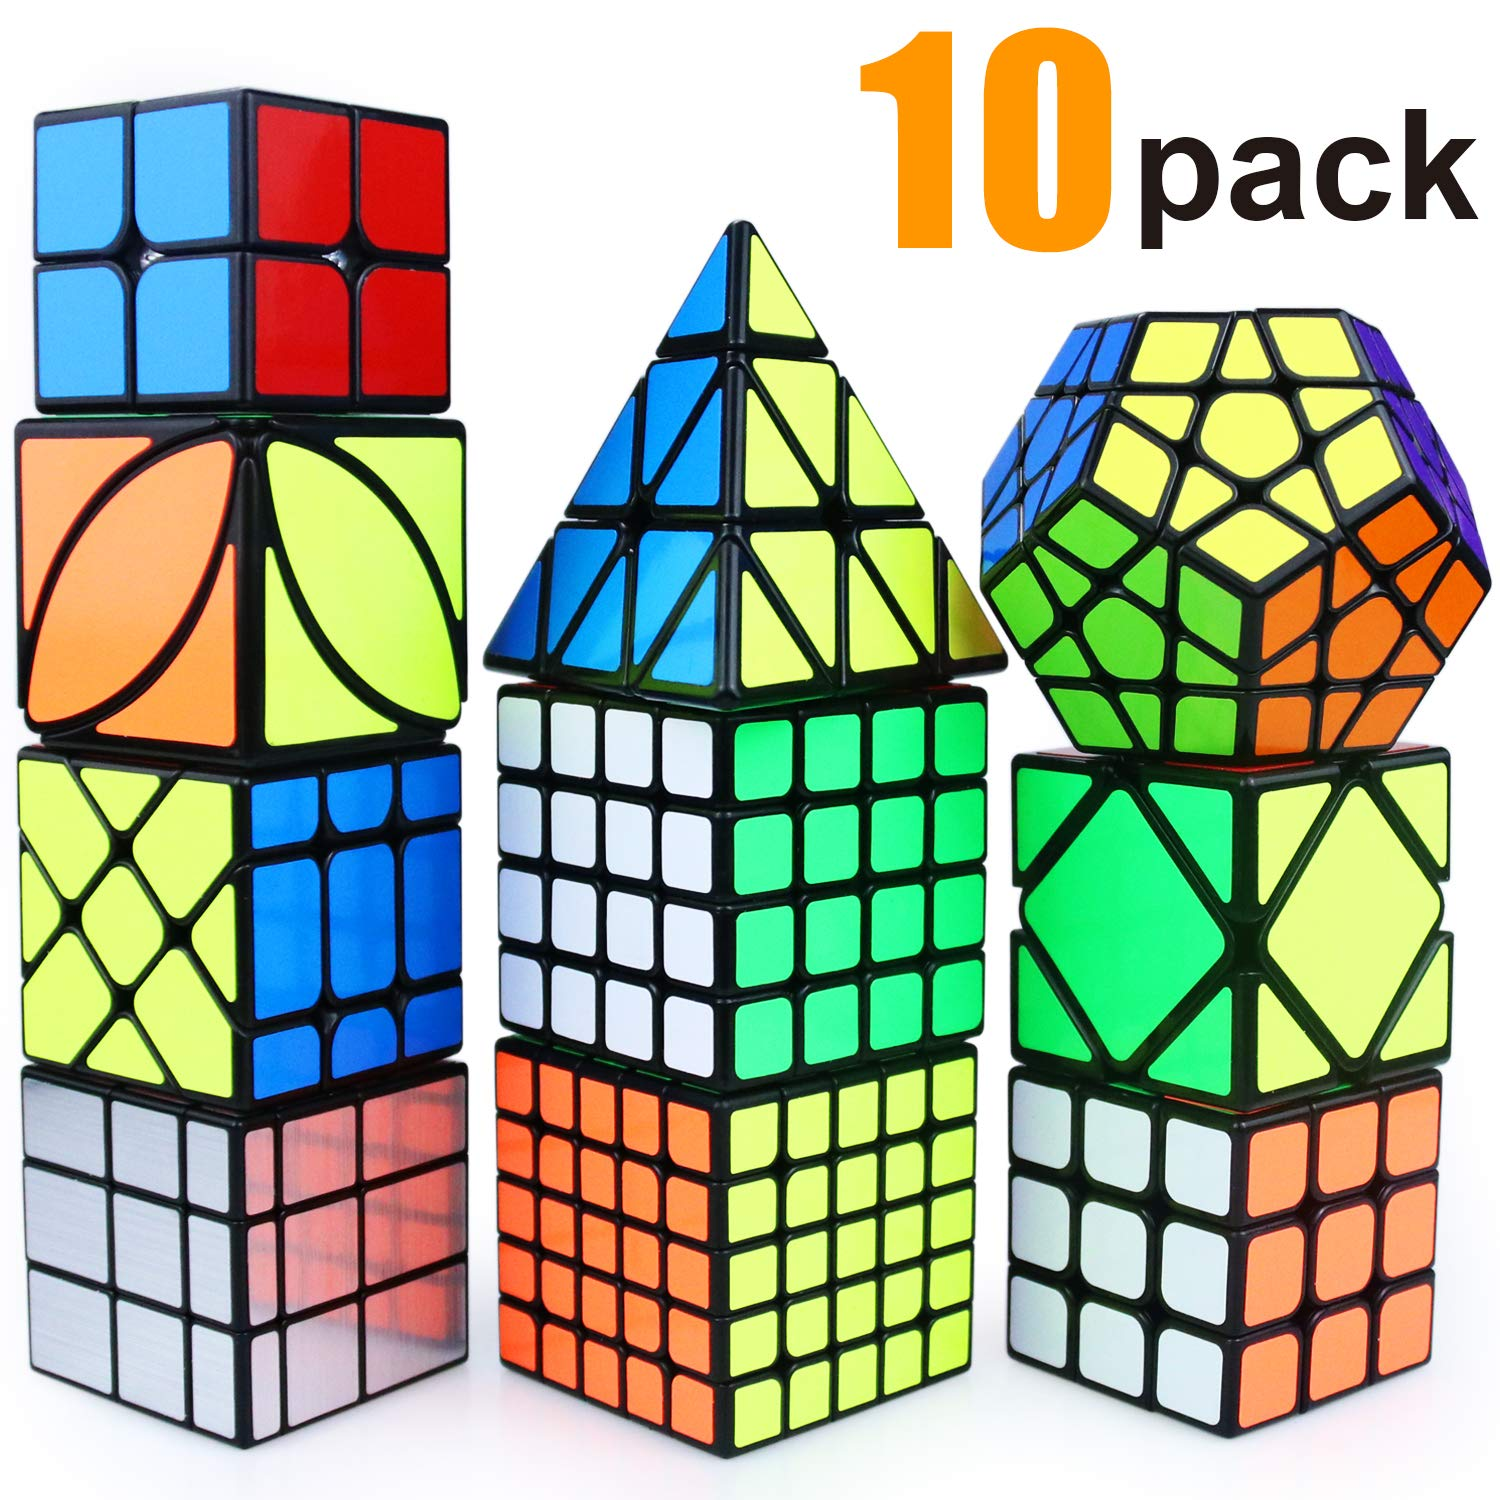 Puzzle Toy Speed Cube Set, 2x2, 3x3, 4x4, 5x5, Pyramid, Skewb, Moving Edge, Ivy, Mirror and Megaminx Cube -Toy Puzzles Cube for Kids and Adults(10 Pack) by AROIC